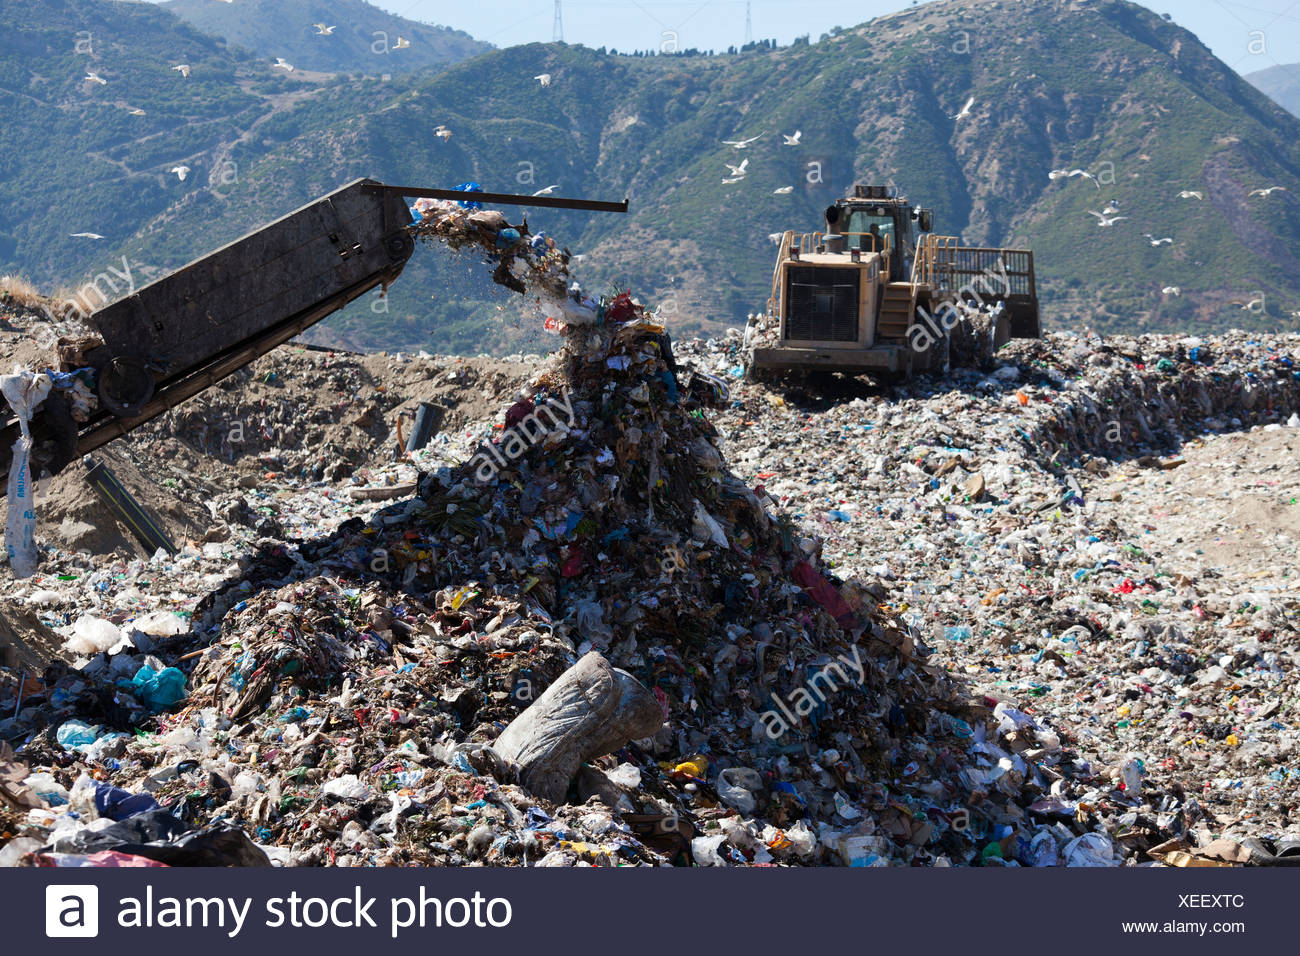 Machinery dumping waste in landfill - Stock Image